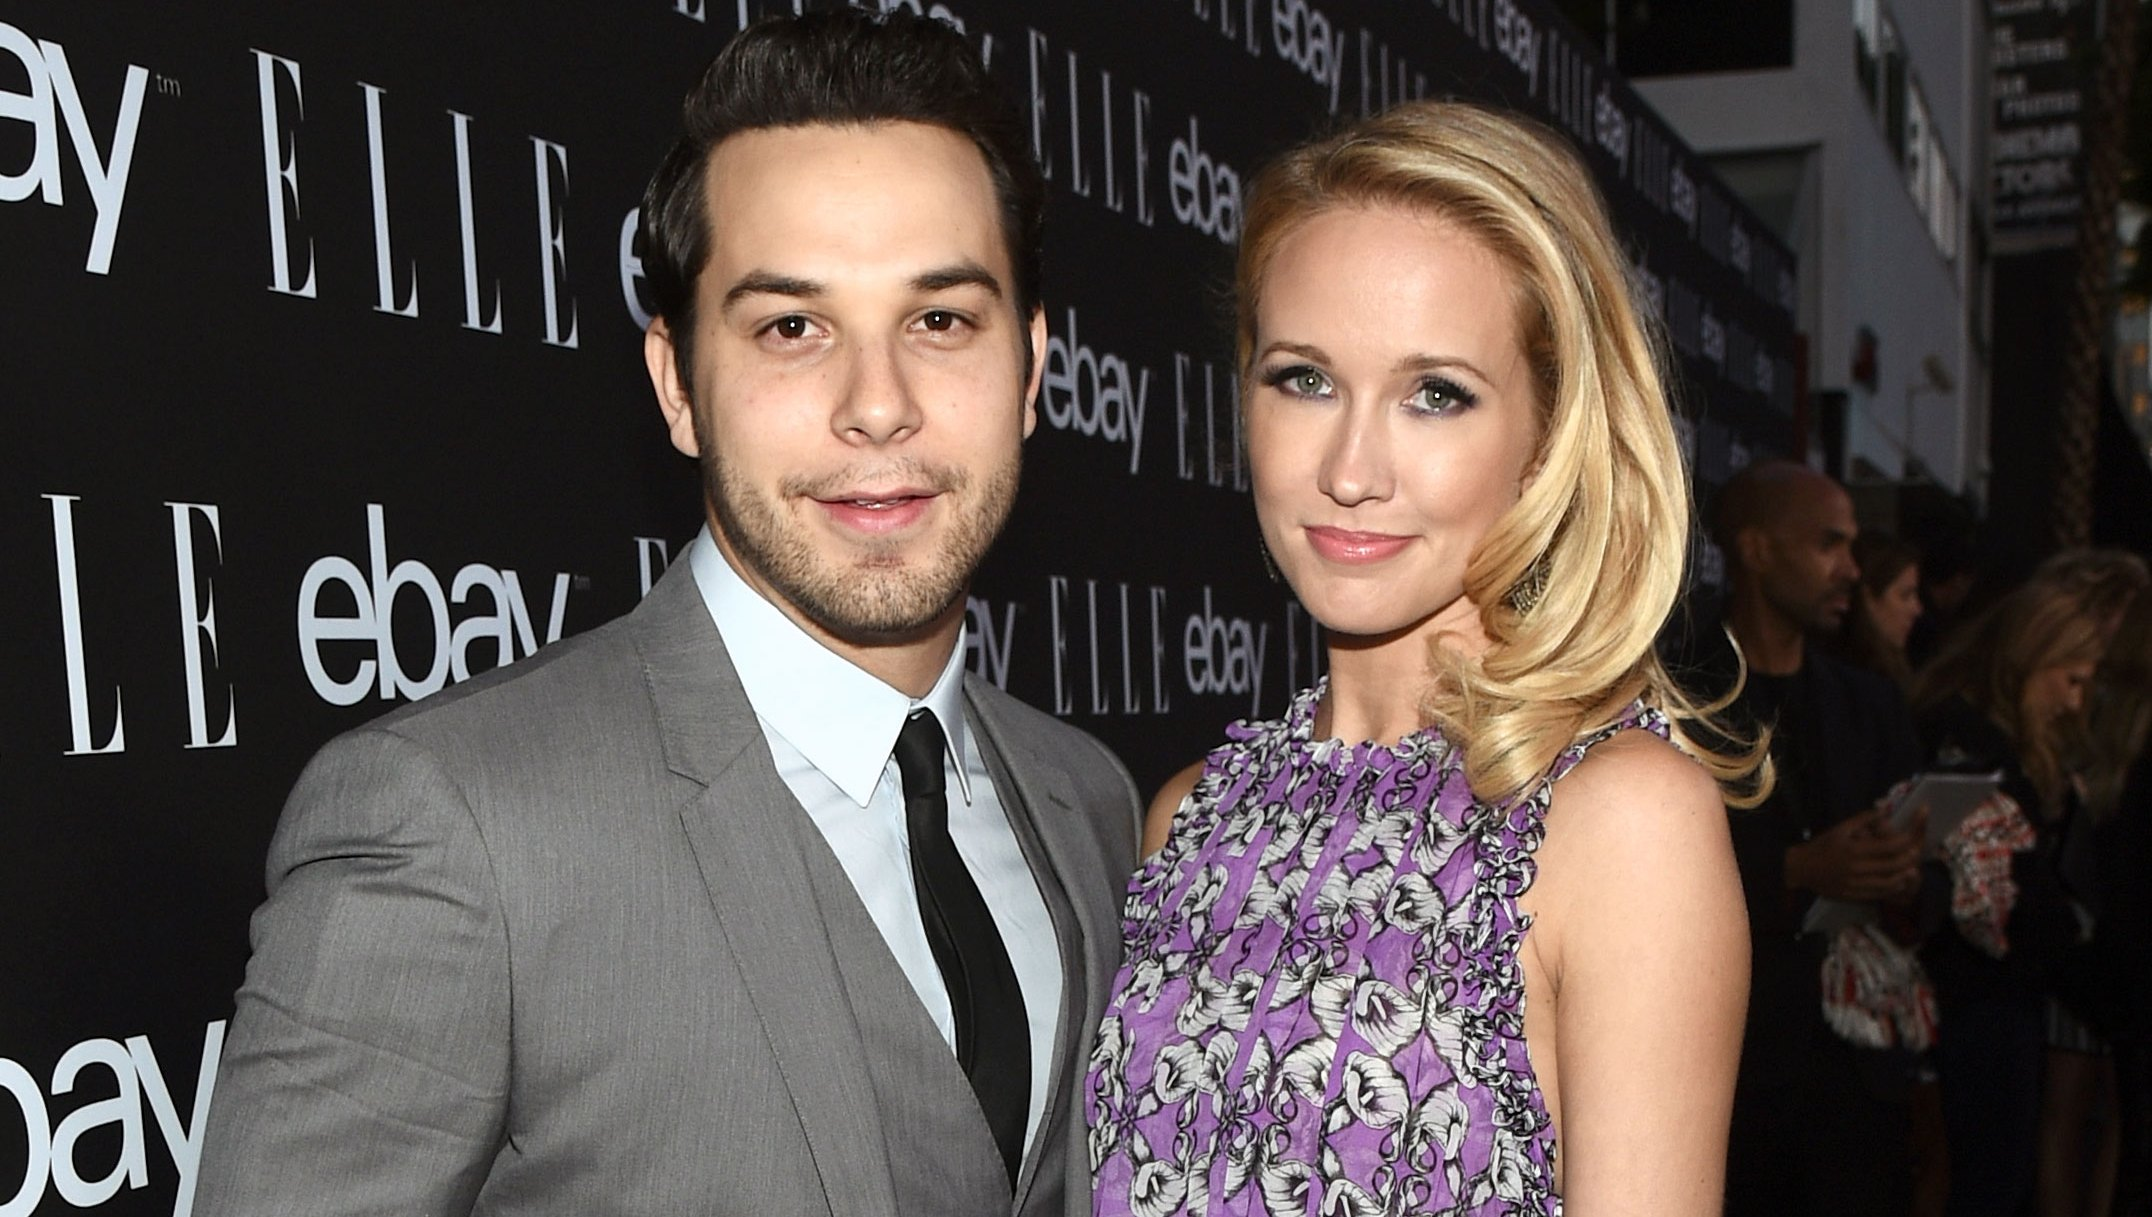 Anna Camp and Skylar Astin Return to Social Media After Divorce Announcement